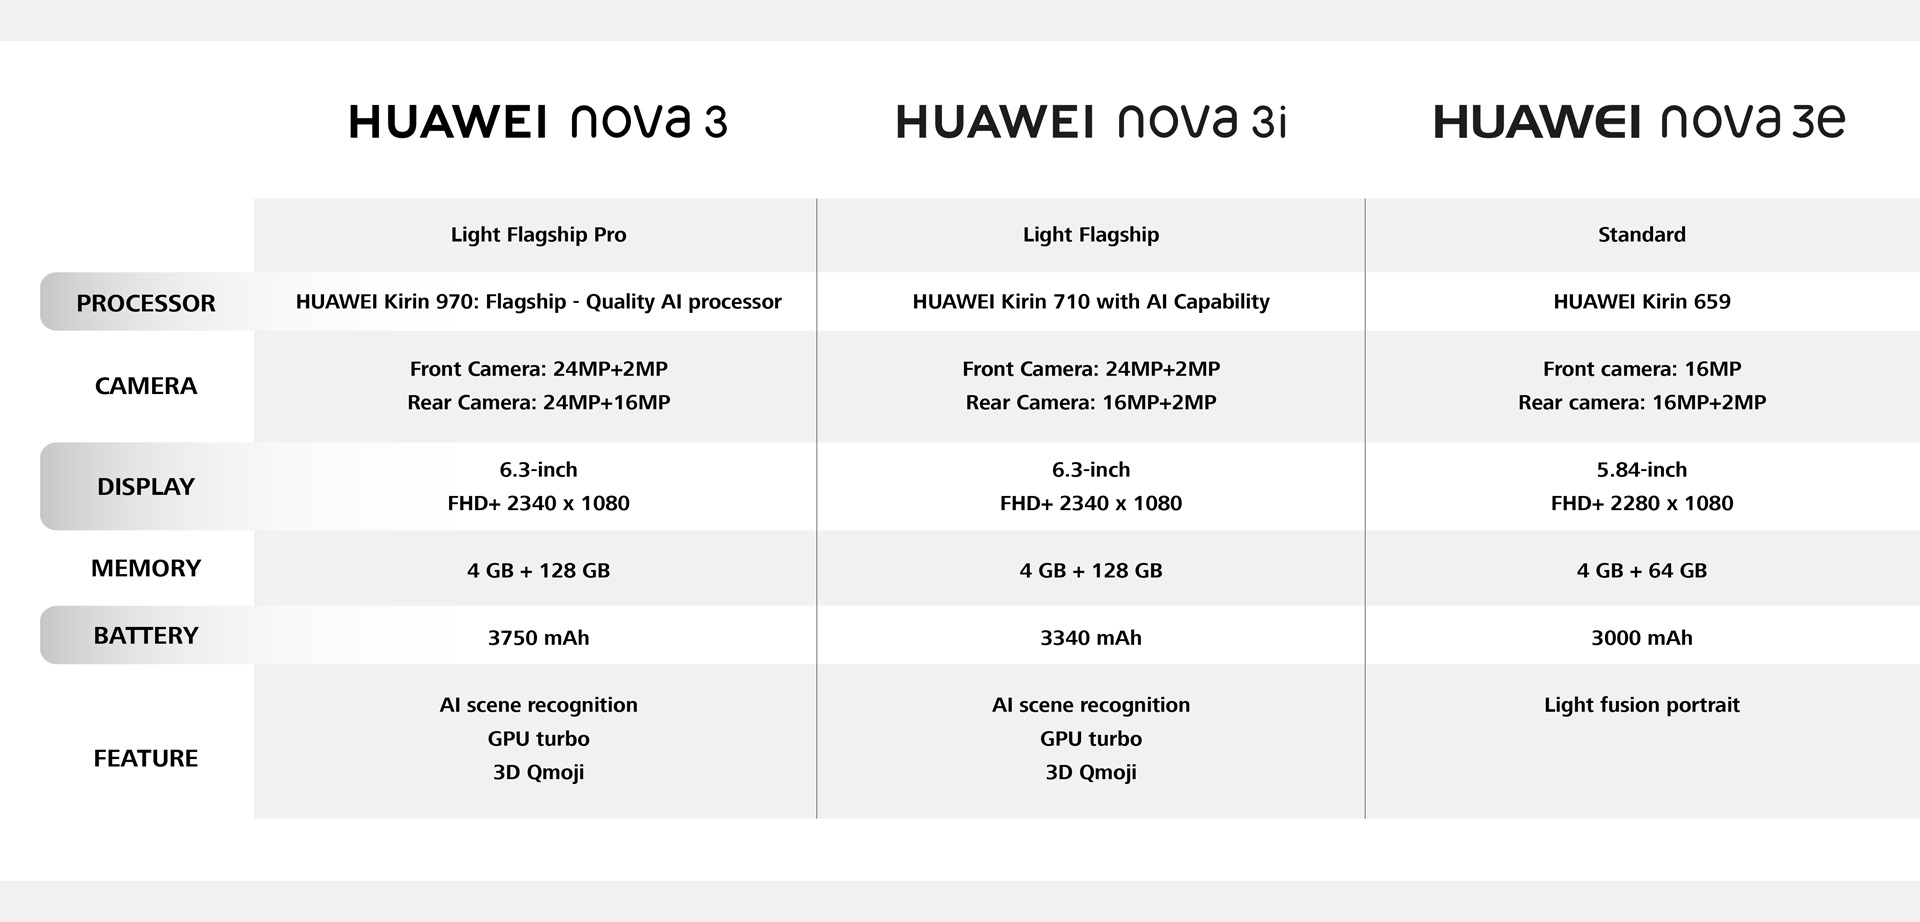 huawei nova 3 compared